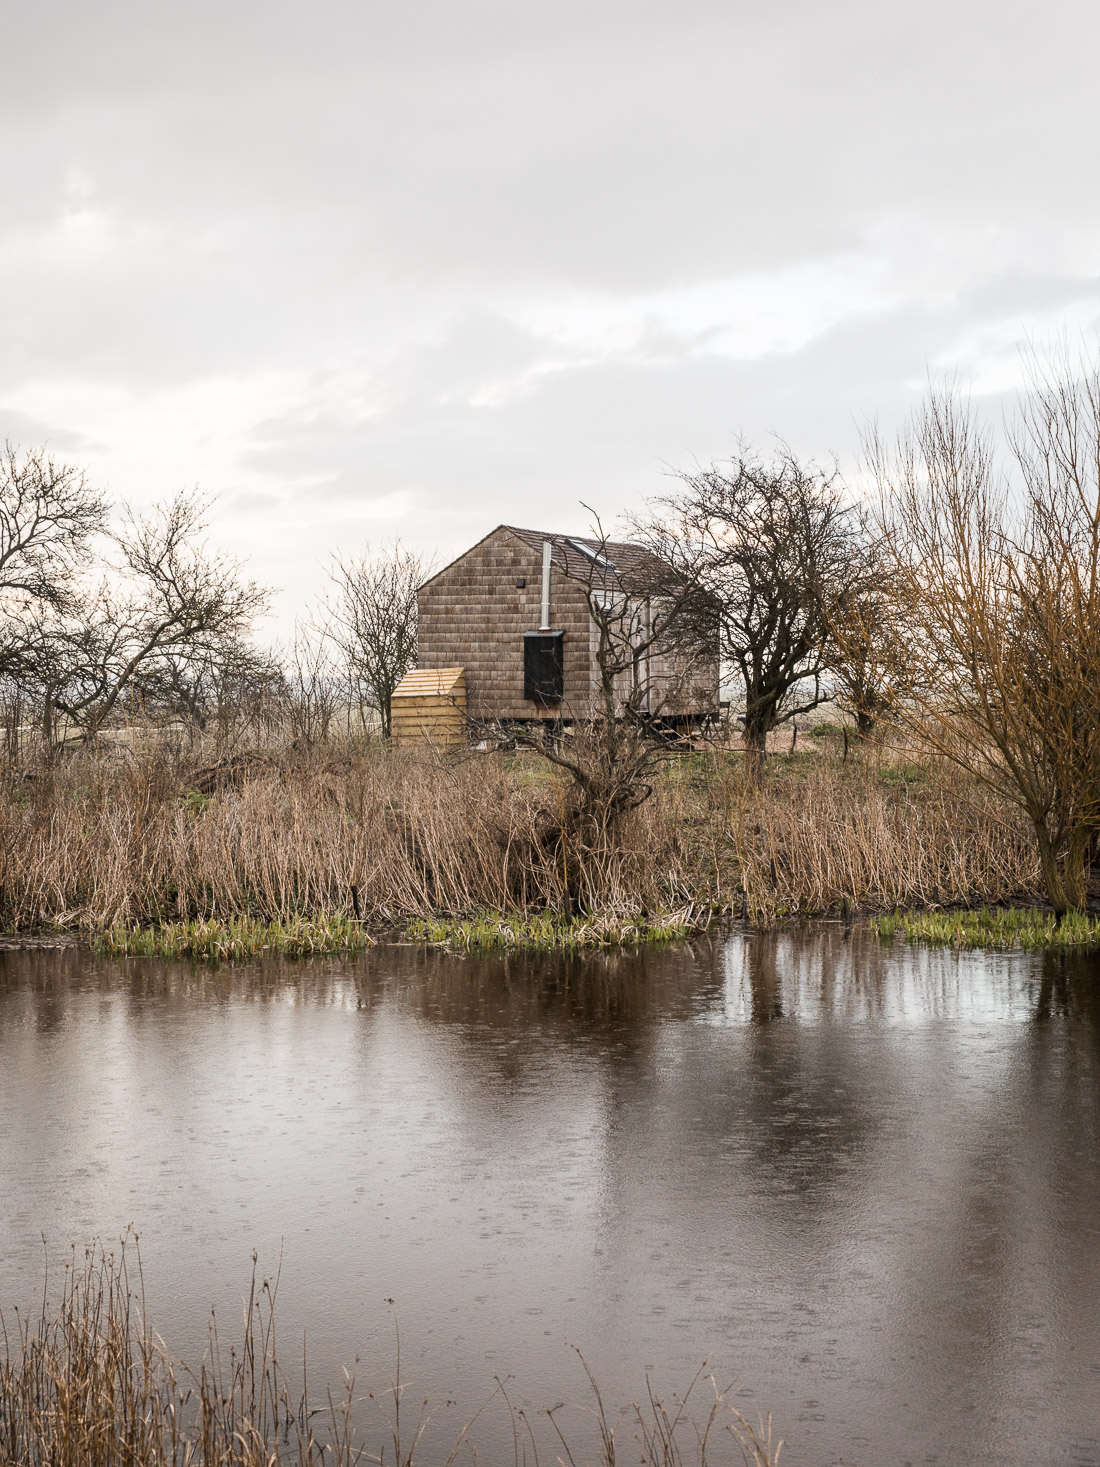 Slowing Living at Elmley Nature Reserve with WKND:IN